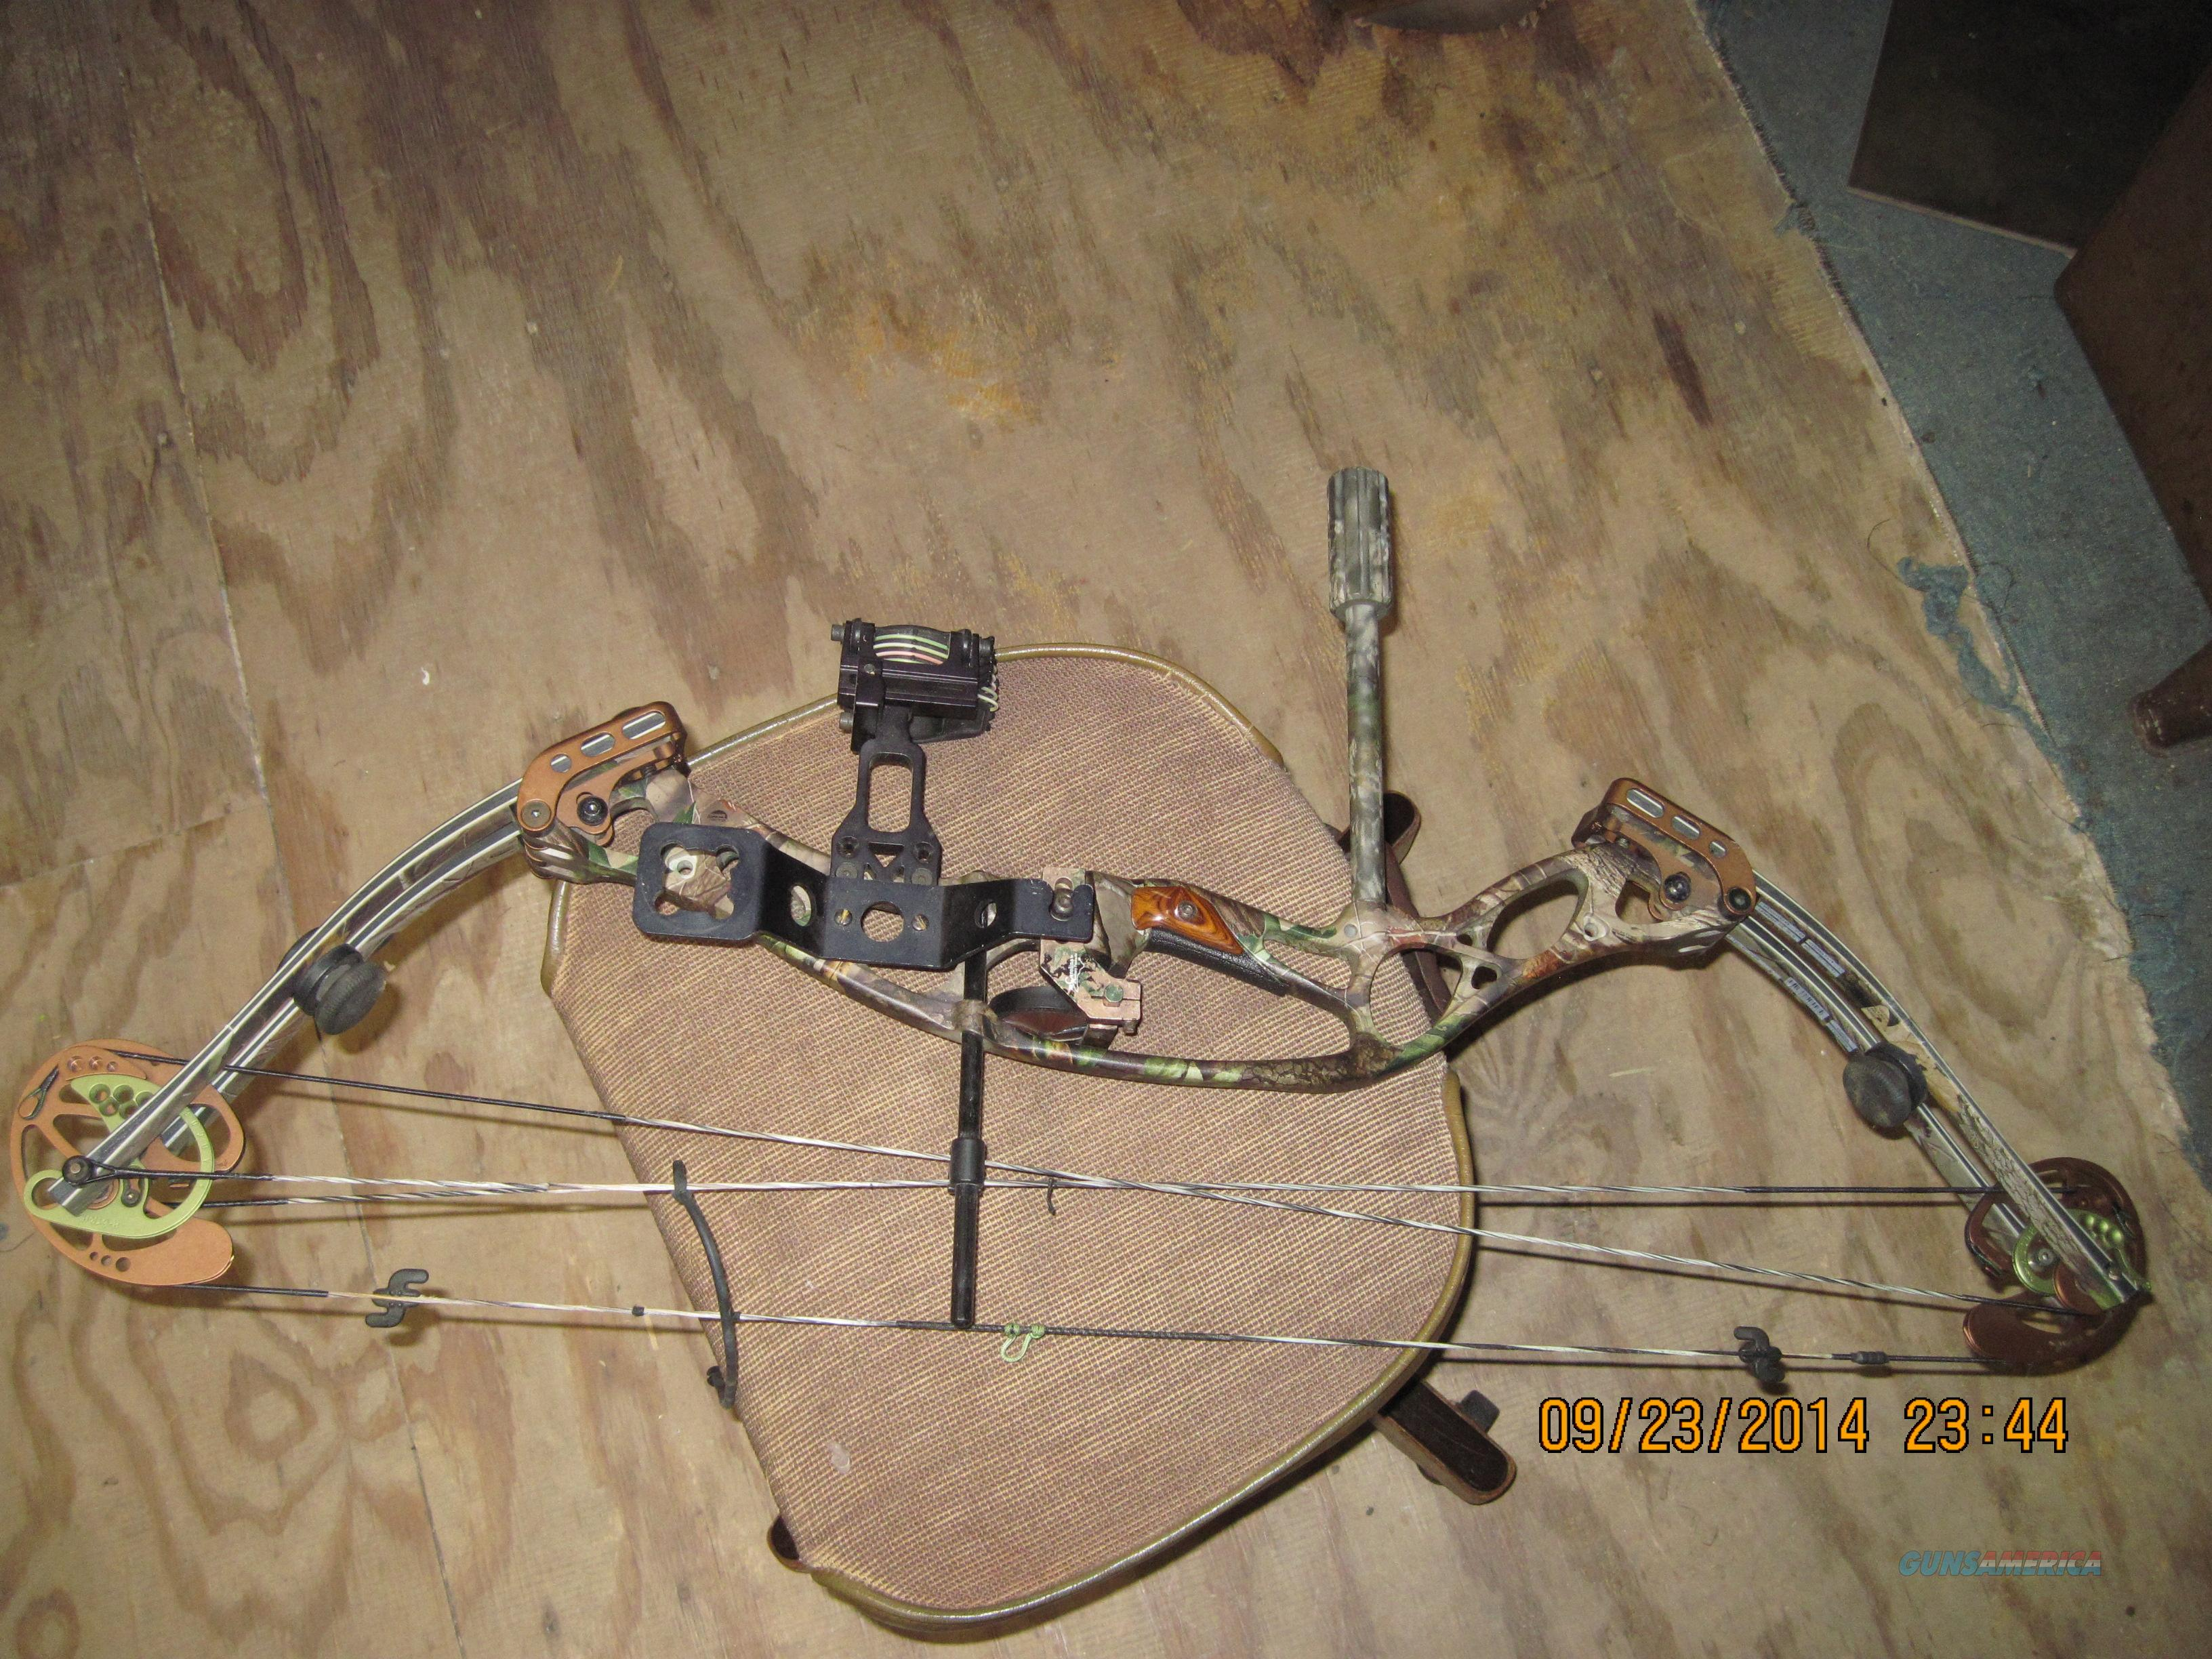 Hoyt X Tec 1000 Total Compound Bow Like New For Sale